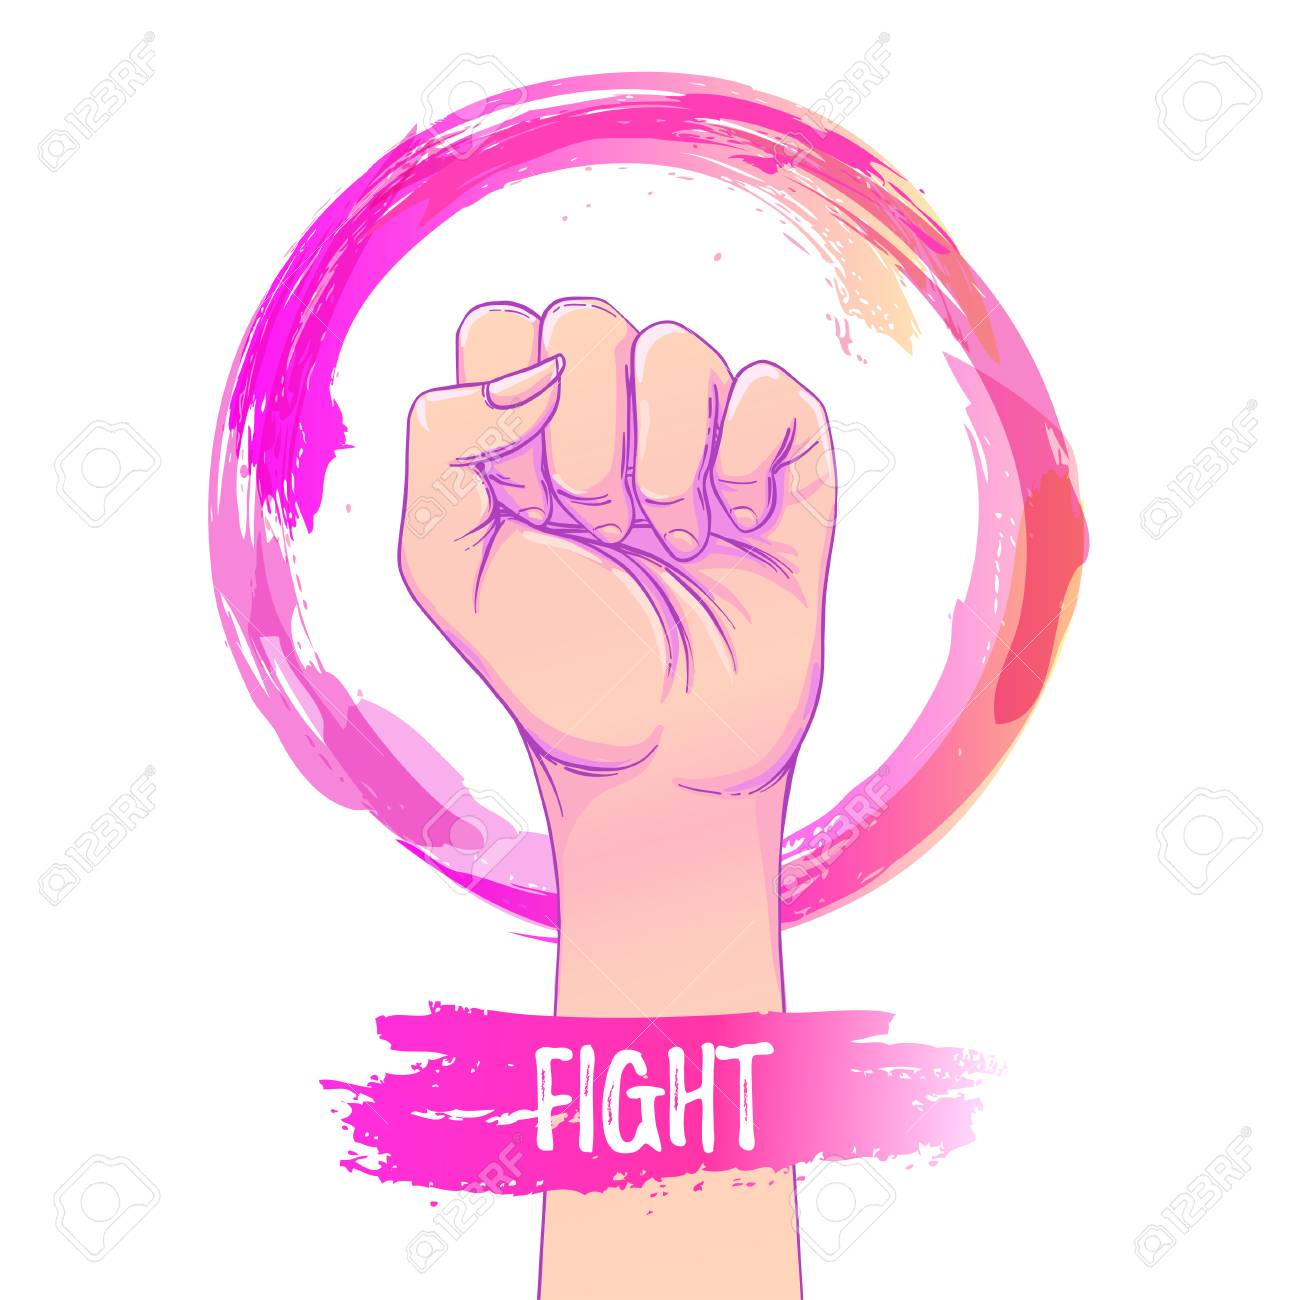 Womens March Female Hand With Her Fist Raised Up Girl Power